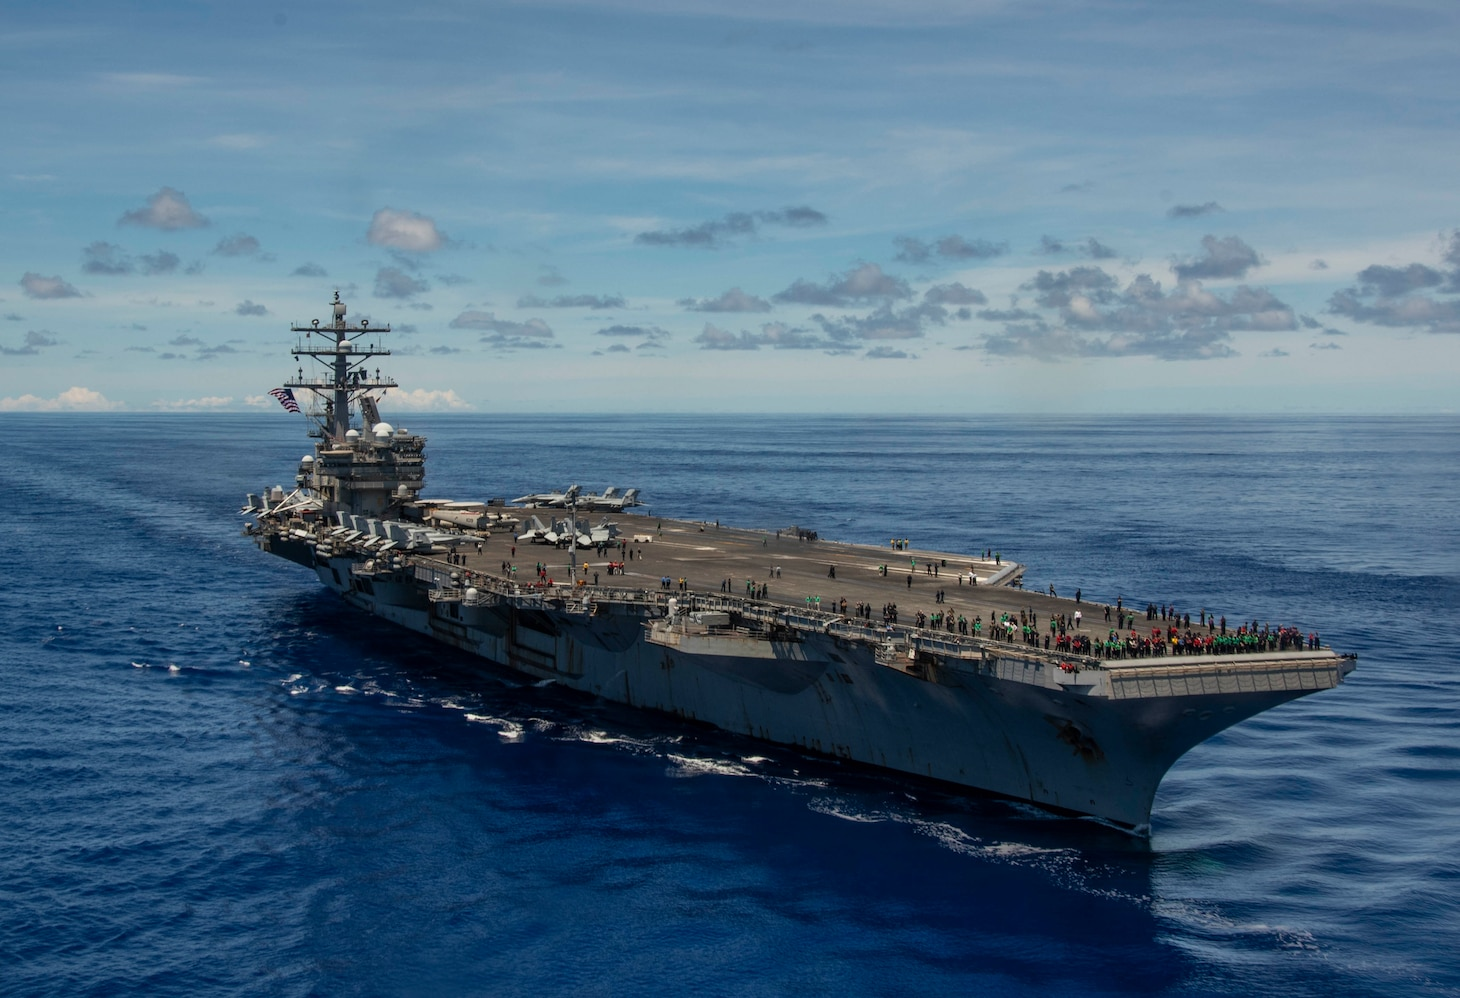 PHILIPPINE SEA (Sept. 25, 2020) The Navy's only forward-deployed aircraft carrier USS Ronald Reagan (CVN 76) steams in formation in support of Valiant Shield 2020. Valiant Shield is a U.S. only, biennial field training exercise (FTX) with a focus on integration of joint training in a blue-water environment among U.S. forces. This training enables real-world proficiency in sustaining joint forces through detecting, locating, tracking and engaging units at sea, in the air, on land and in cyberspace in response to a range of mission areas. (U.S. Navy video by Mass Communication Specialist 2nd Class Codie Soule)